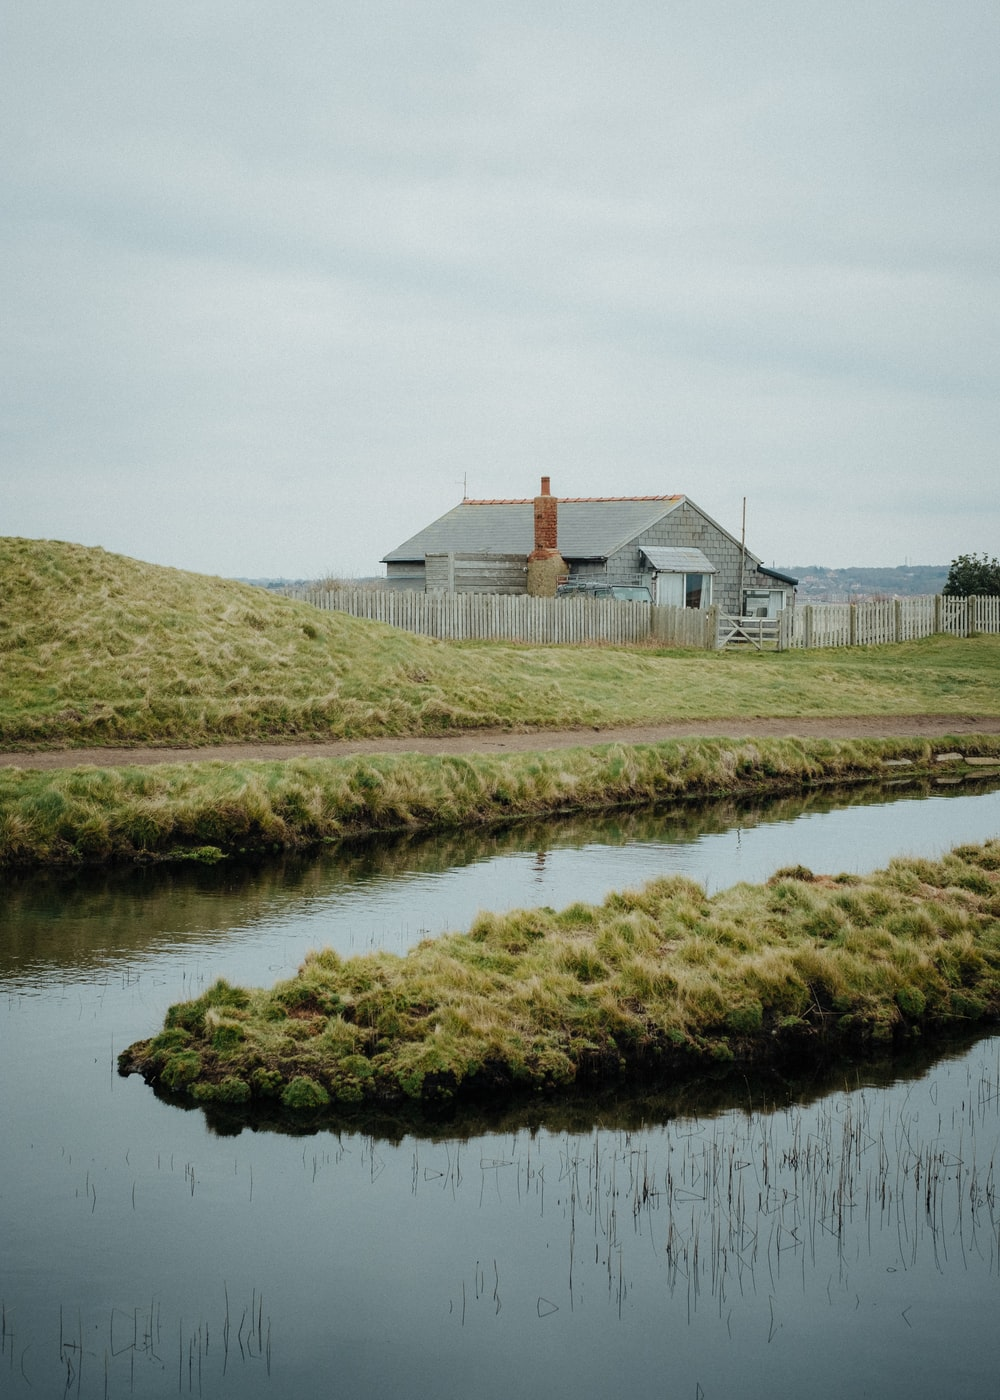 white and brown house near green grass and body of water during daytime